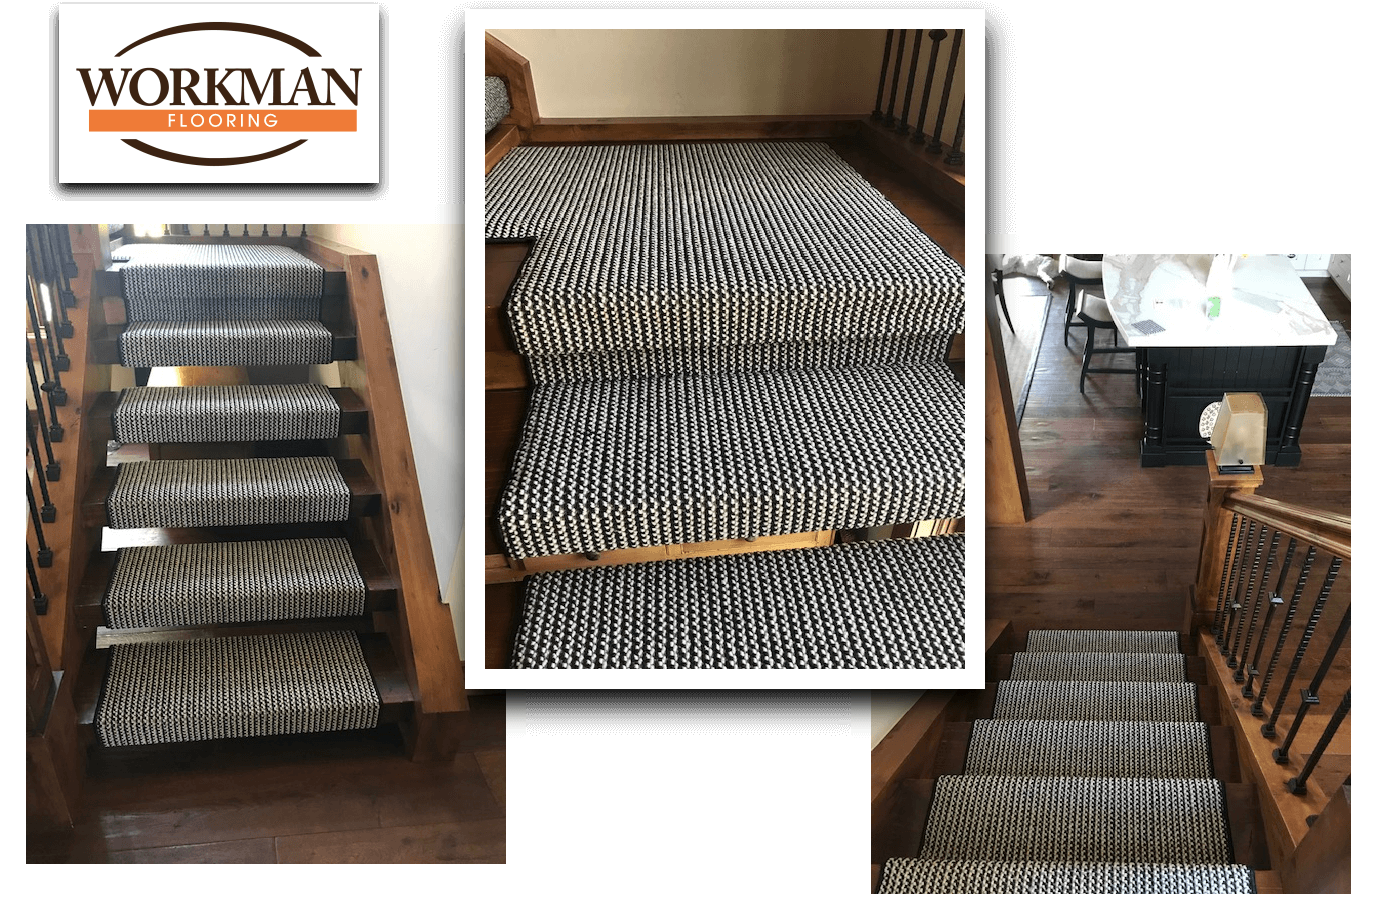 Workman Flooring Custom Carpeting Stairs